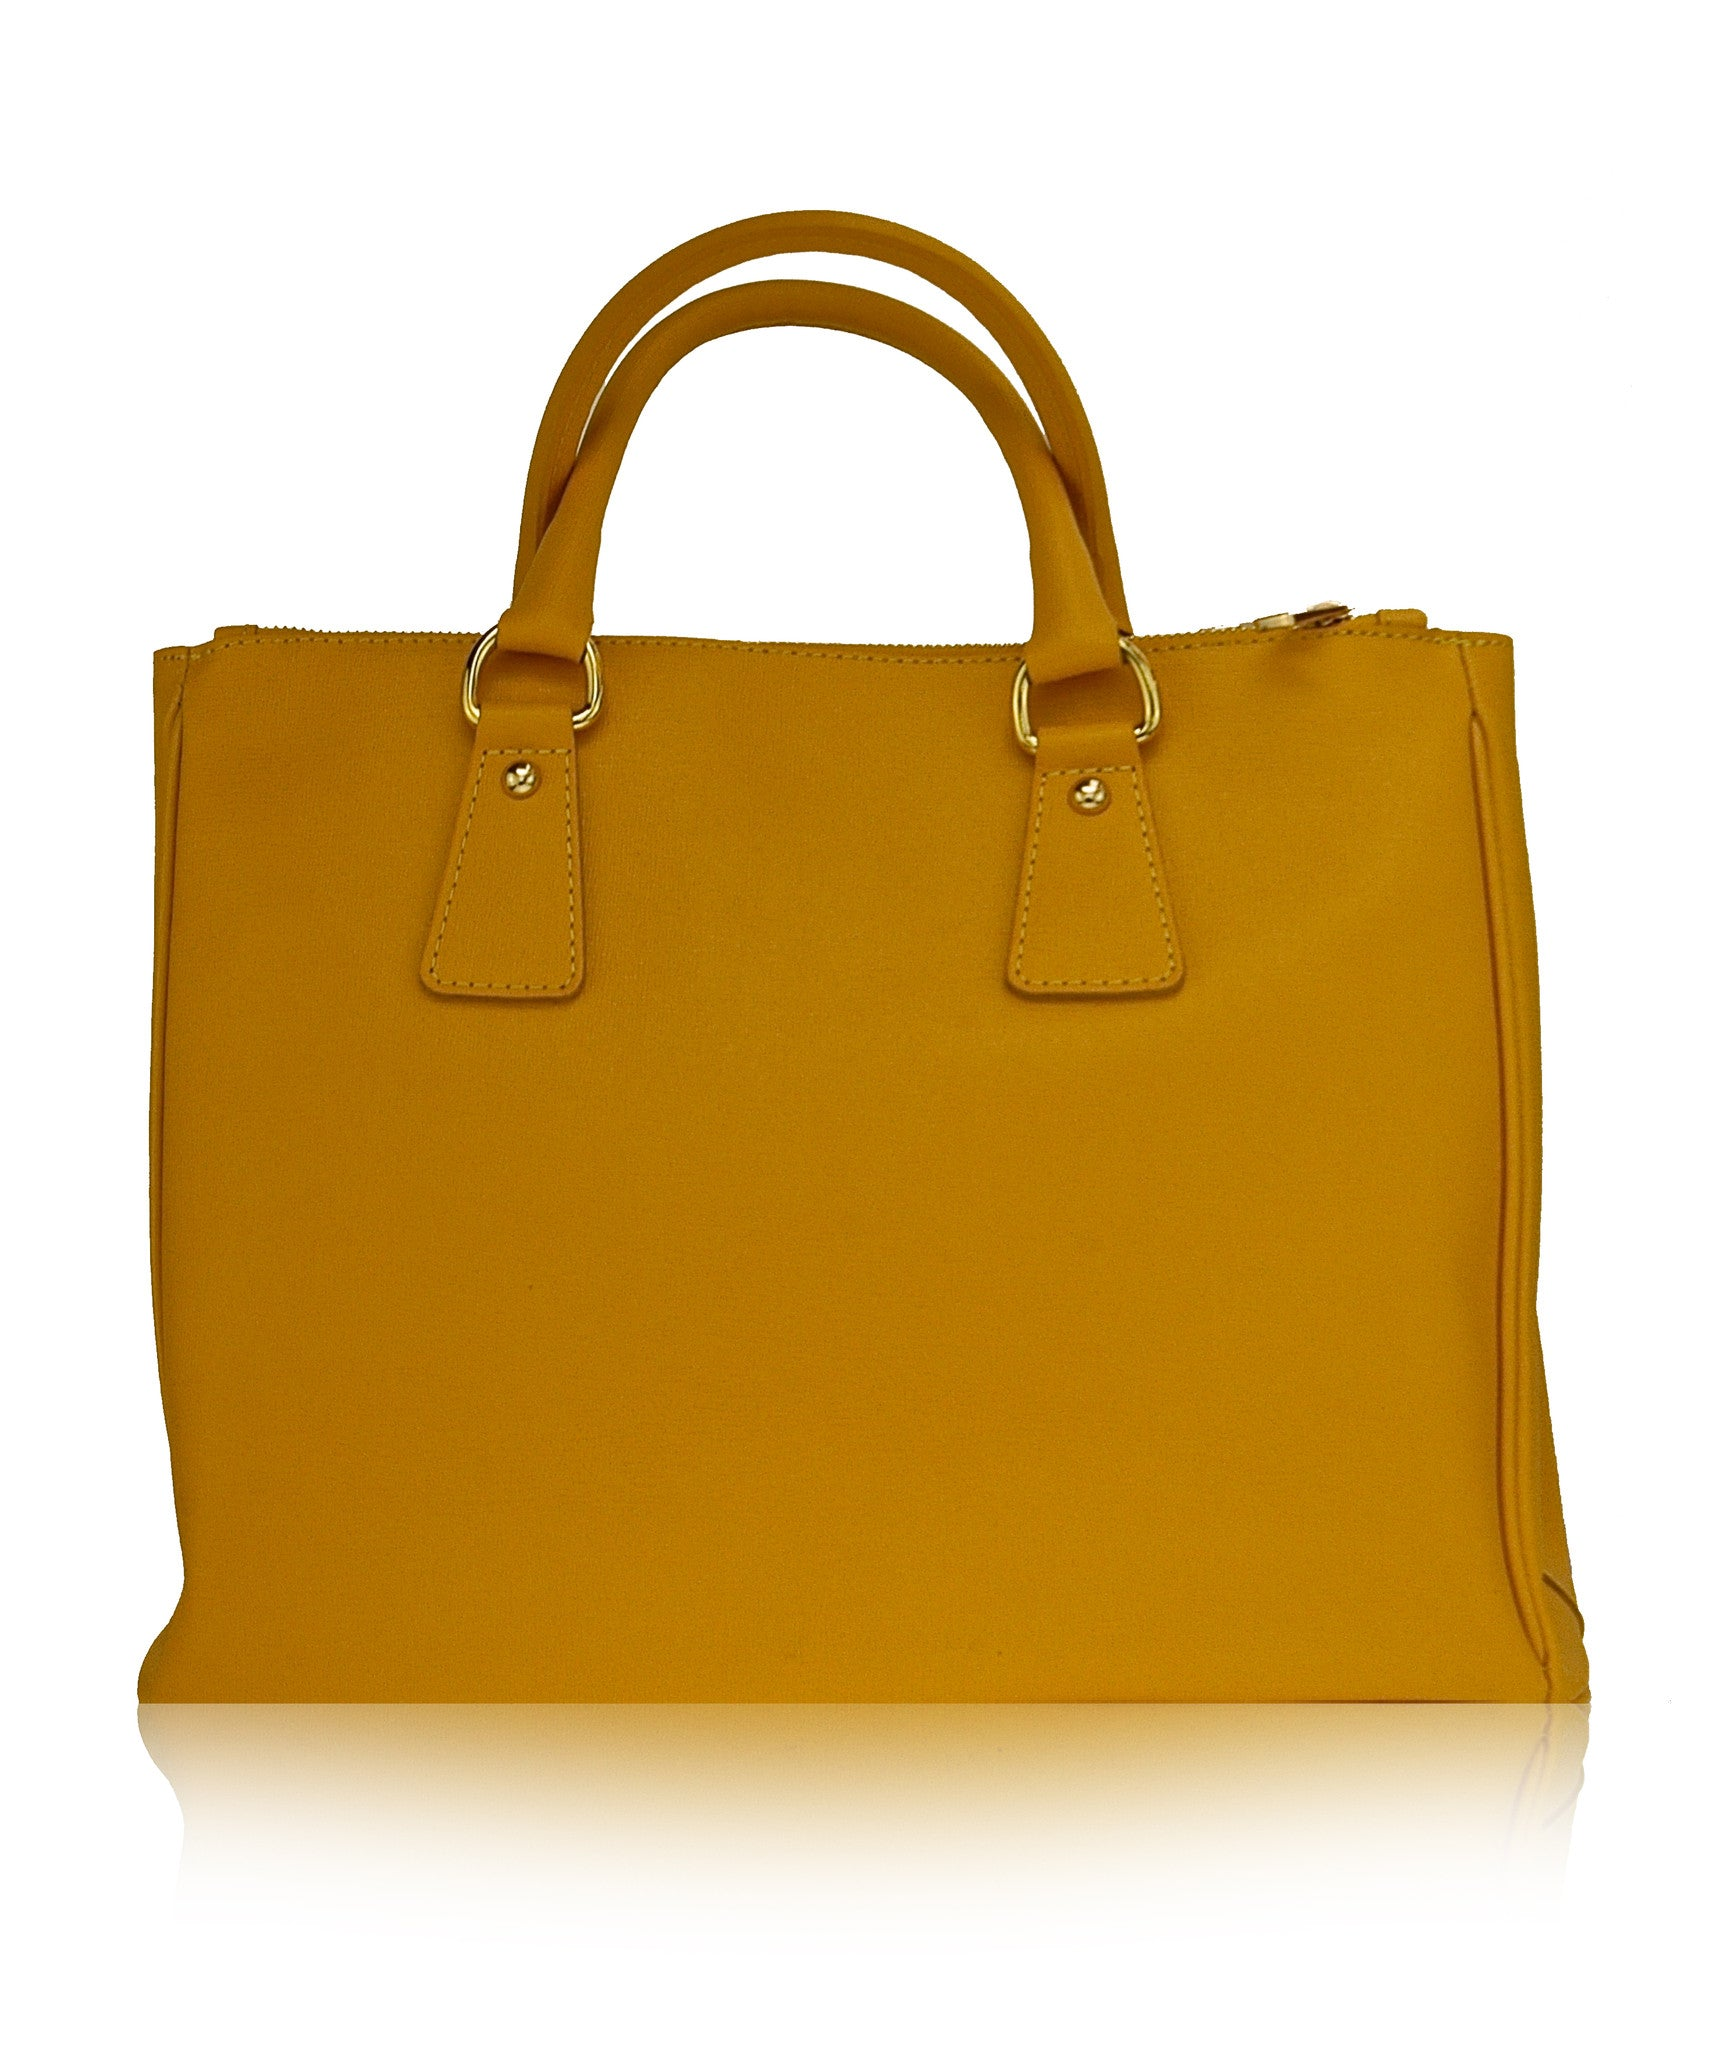 Cheap Leather Bags Online Uk - CEAGESP 39173cf6d1f1